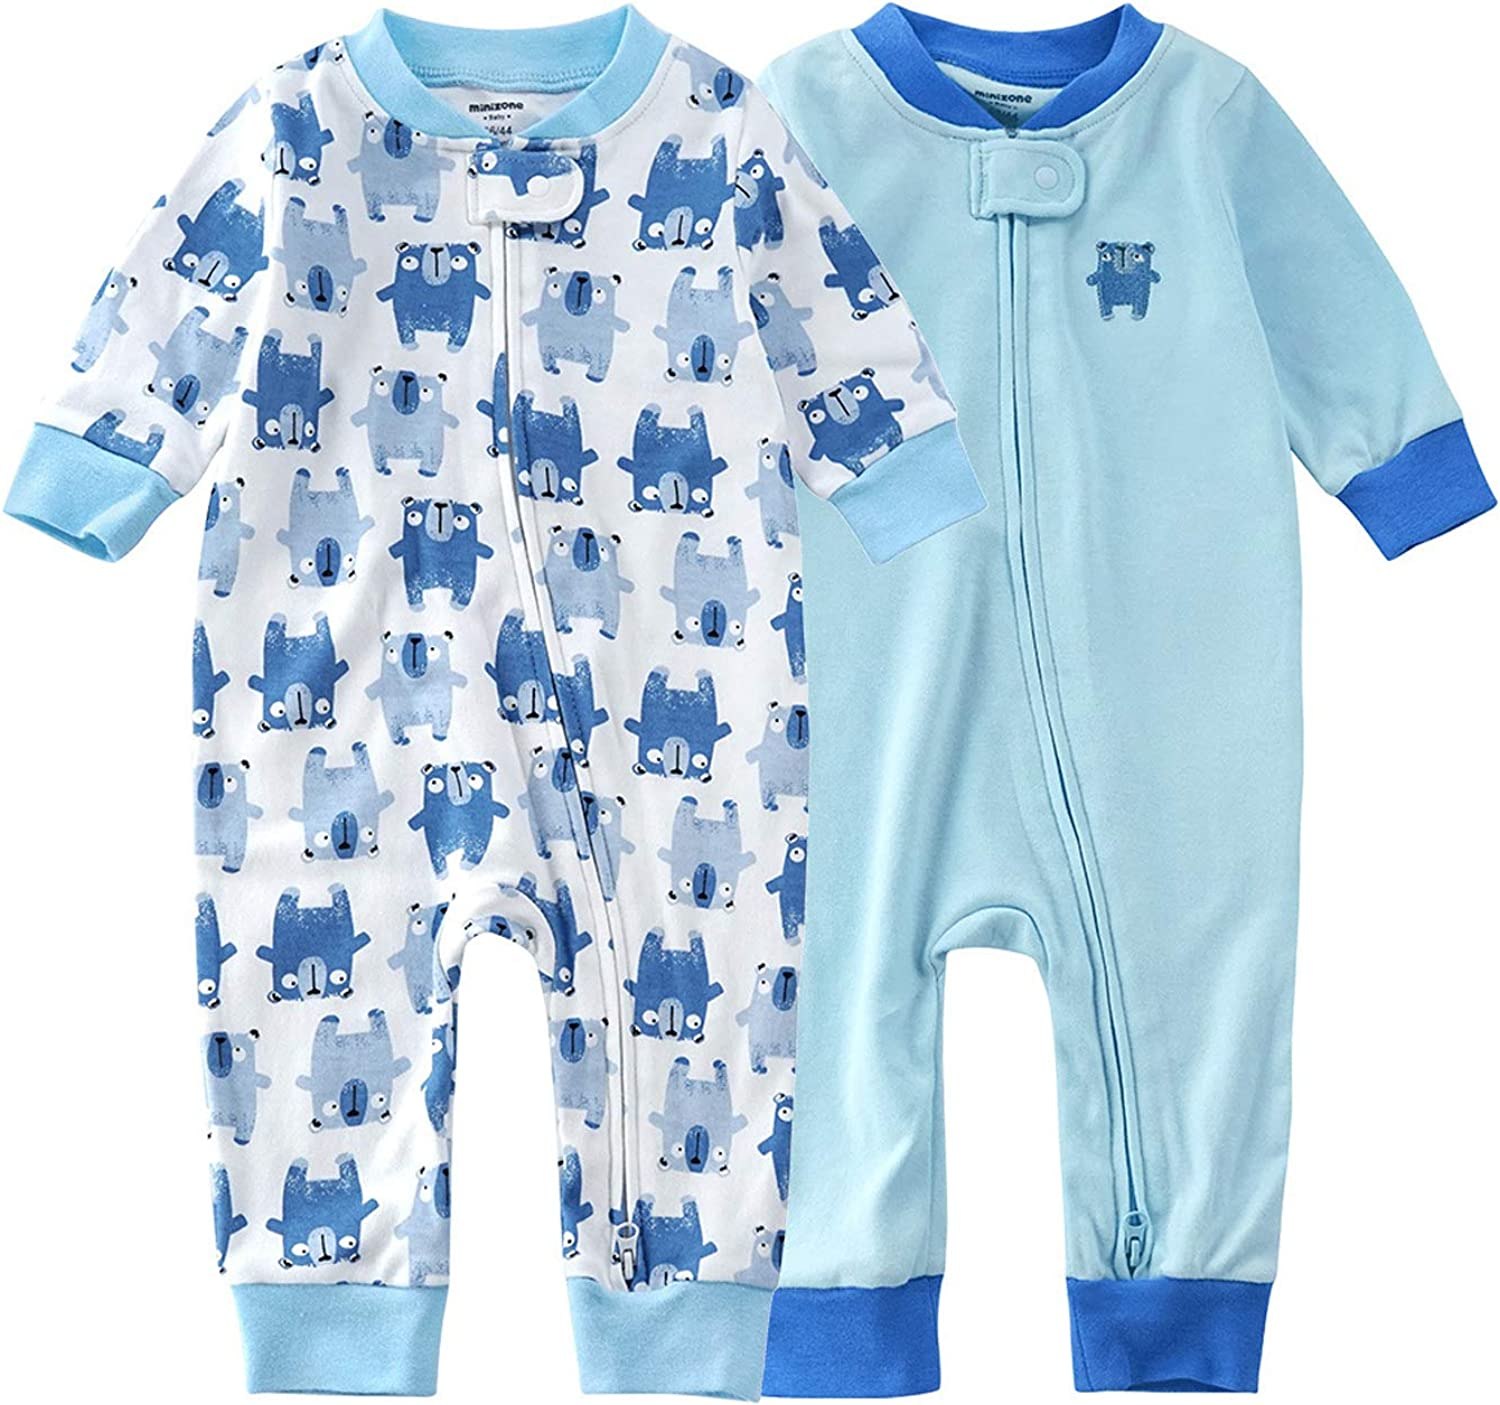 Teach Leanbh Baby Indianapolis Mall 2-Pack Footless Cotton Pajamas 5% OFF Long Pri Sleeve